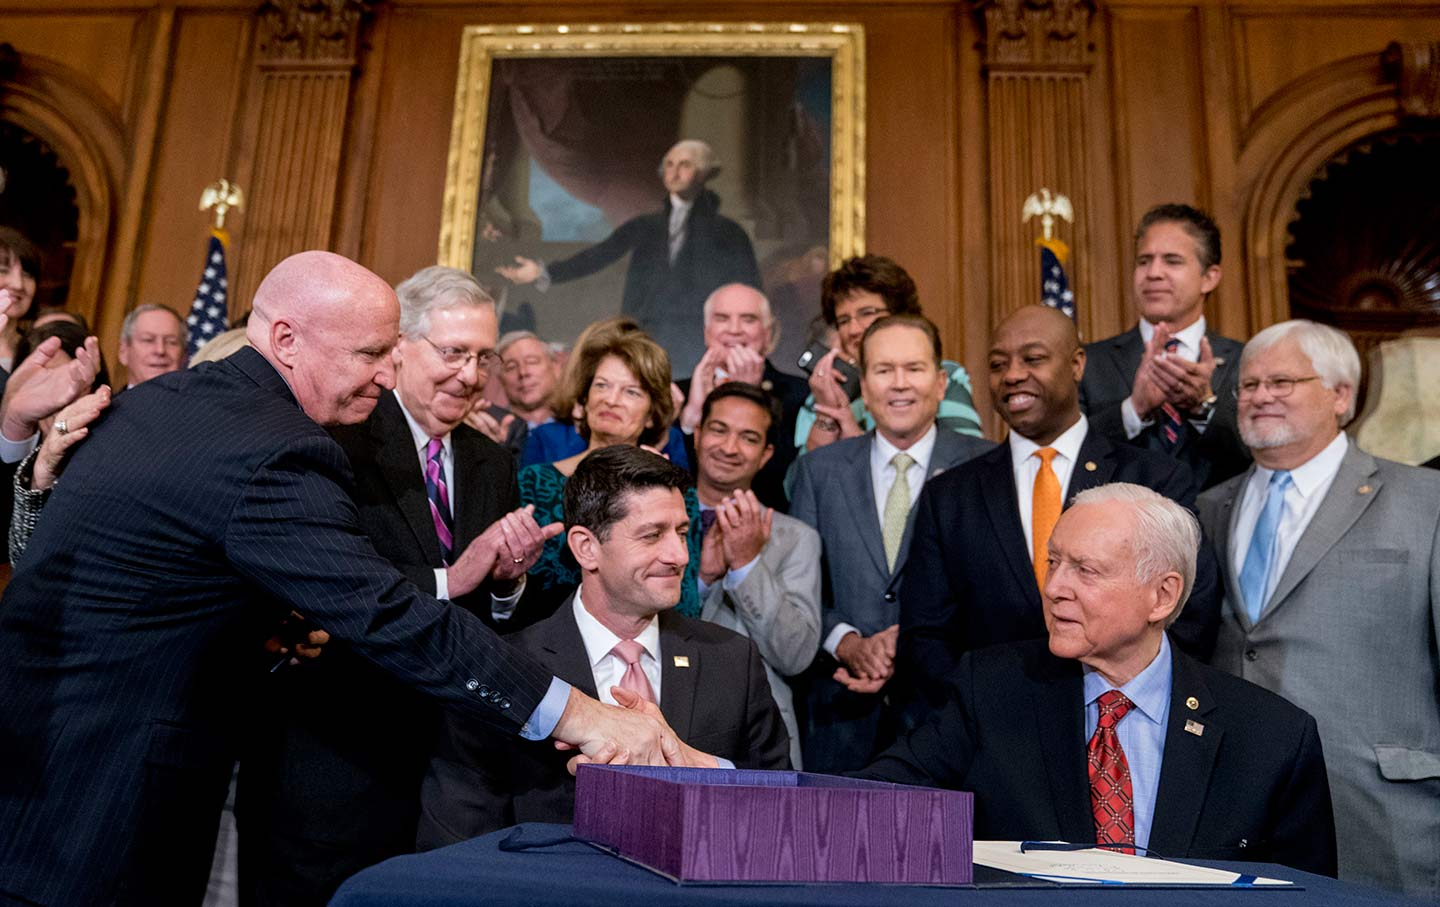 Congressmen celebrate after House Speaker Paul Ryan and Senate Finance Committee Chairman Orrin Hatch sign the final version of the GOP tax bill on December 21, 2017